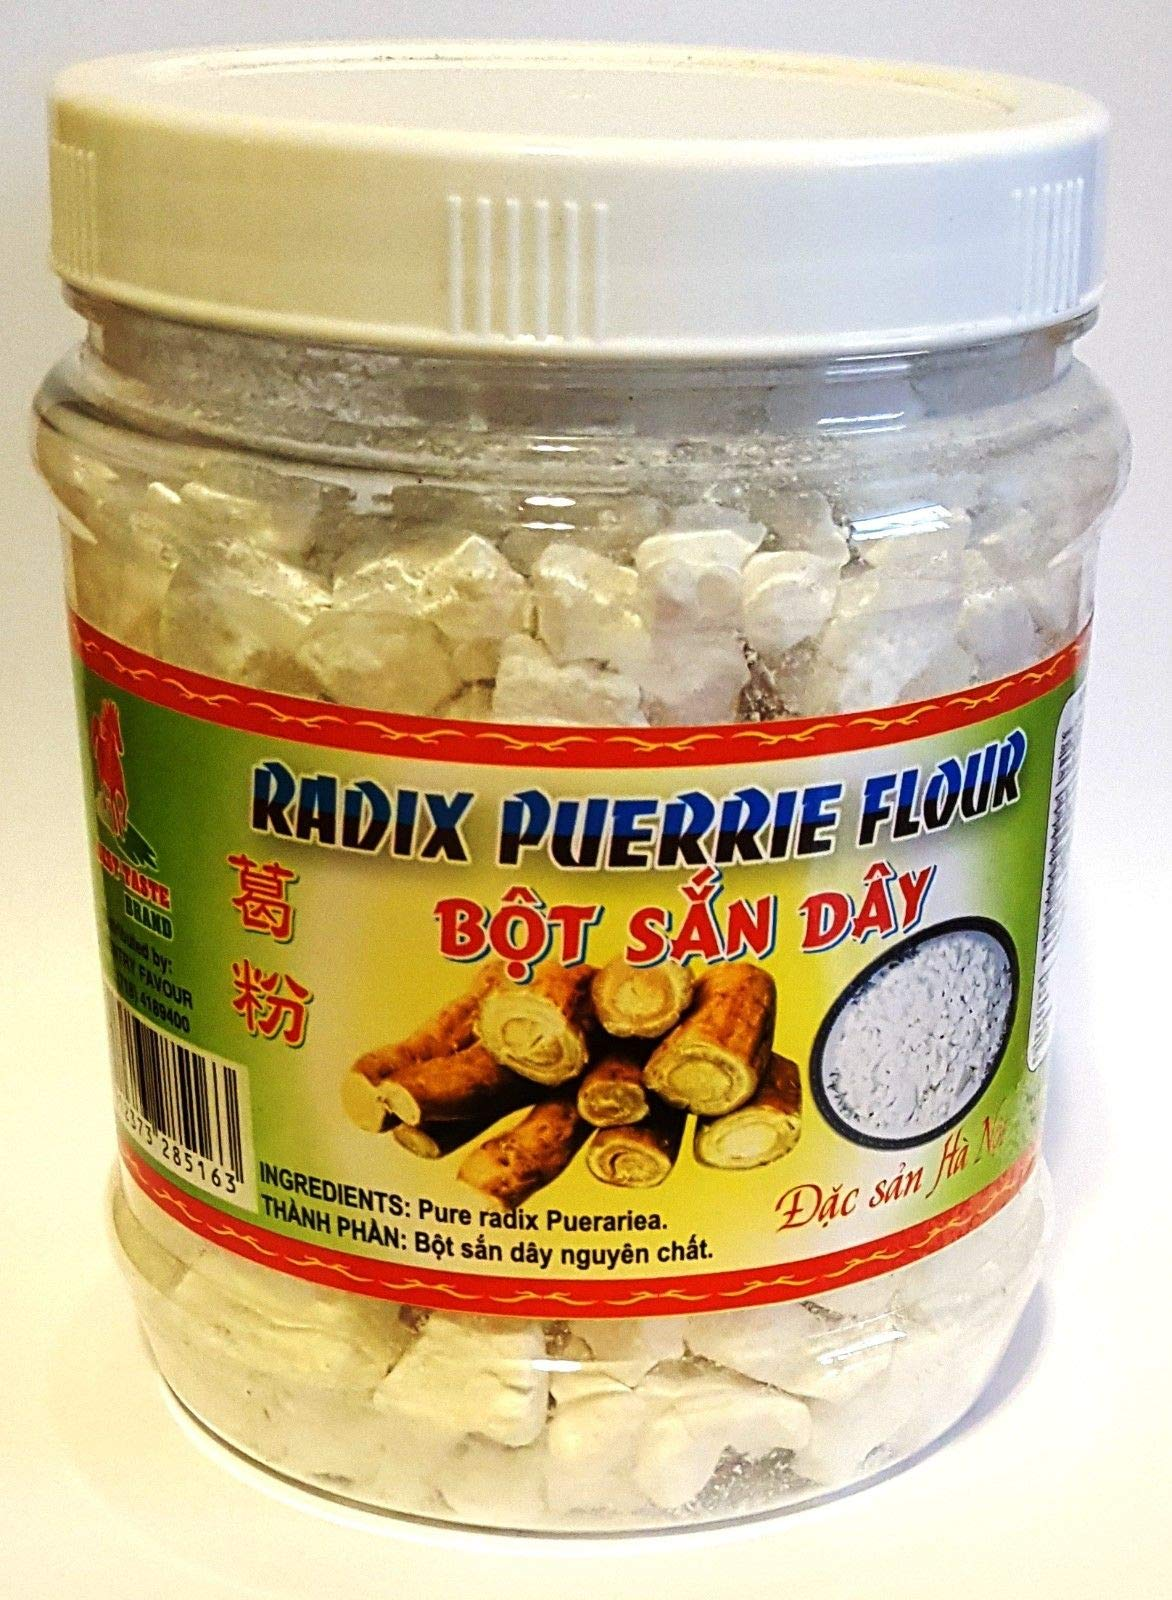 Arrowroot Starch Powder Bot San Day Radix Puerrie Flour 14 oz - Pack of 1